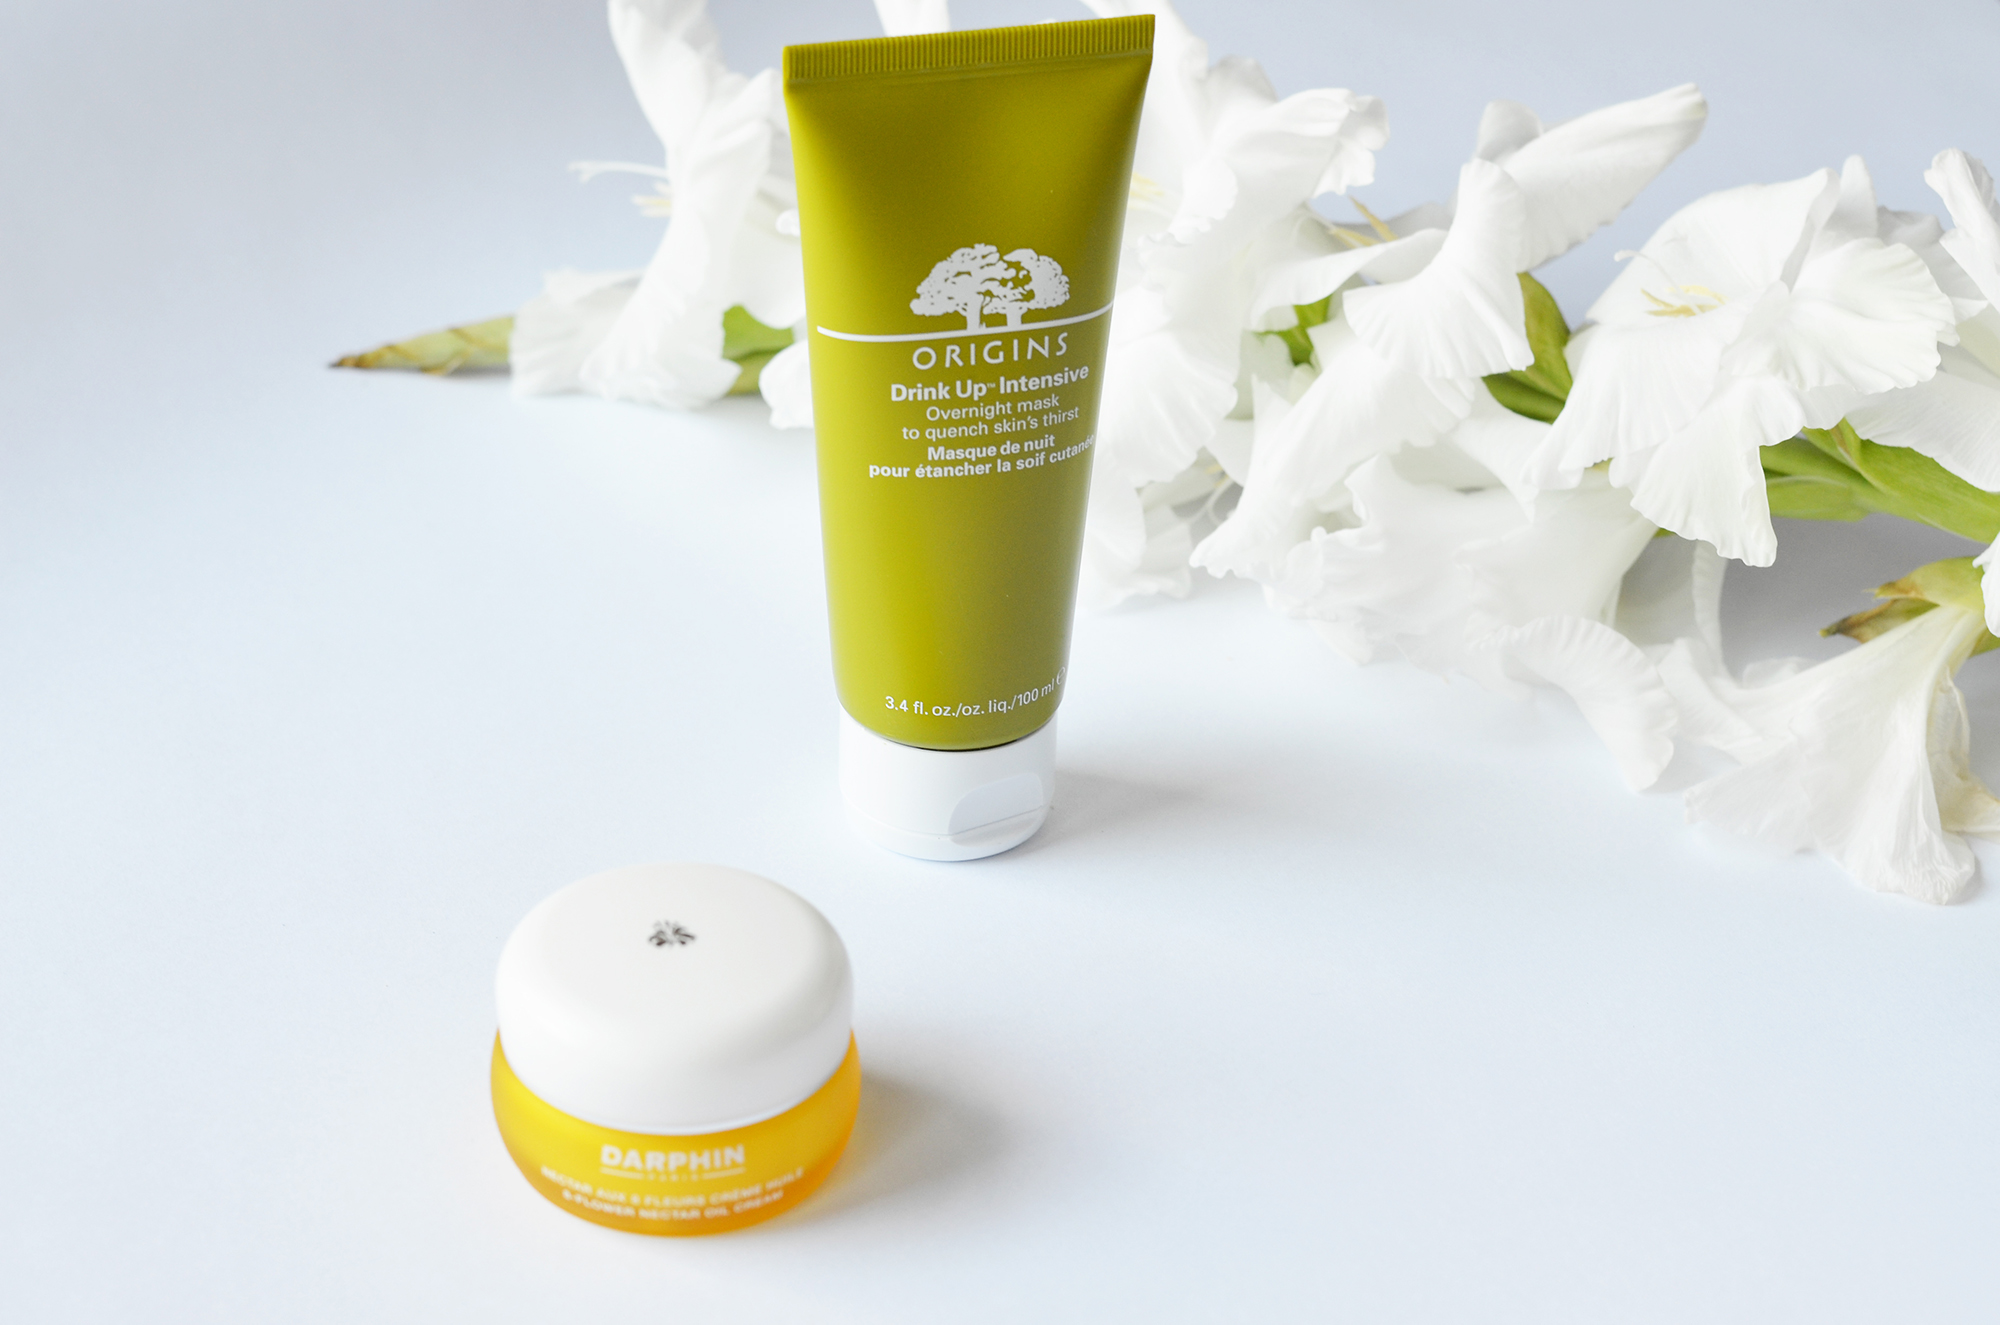 origins drink up 10 minute mask